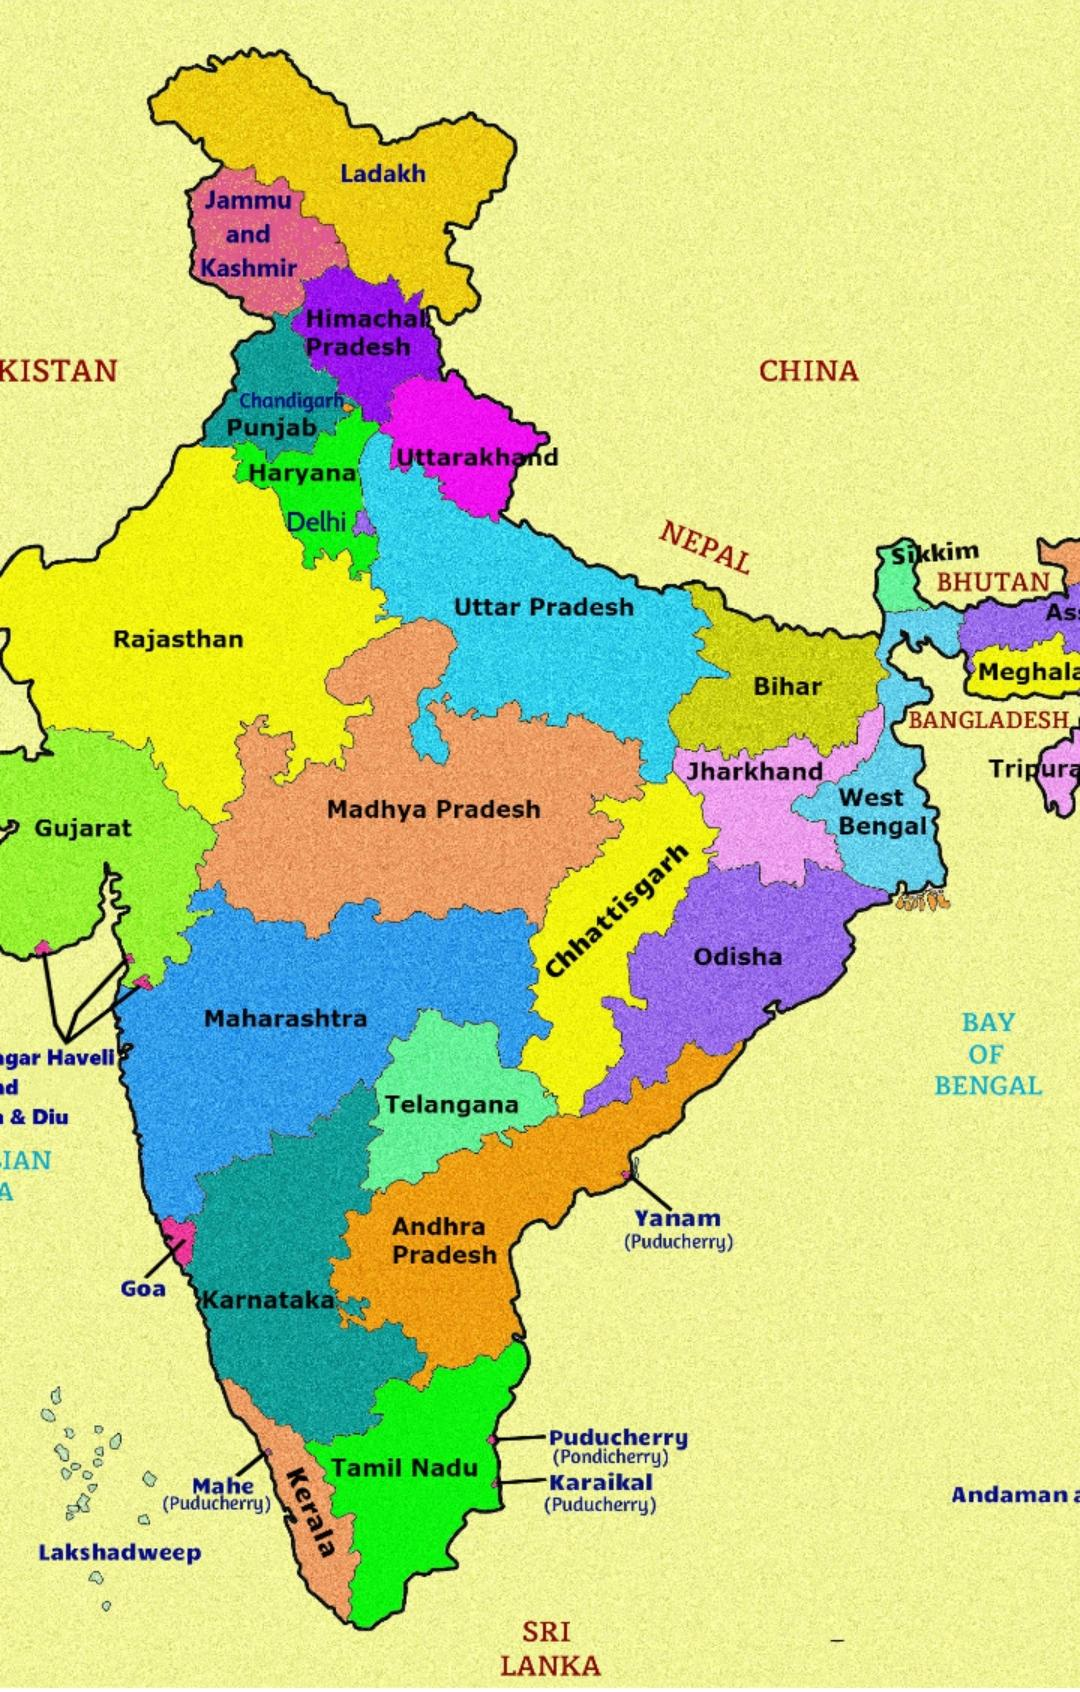 indian states and capitals in india map India Map Capitals For Android Apk Download indian states and capitals in india map